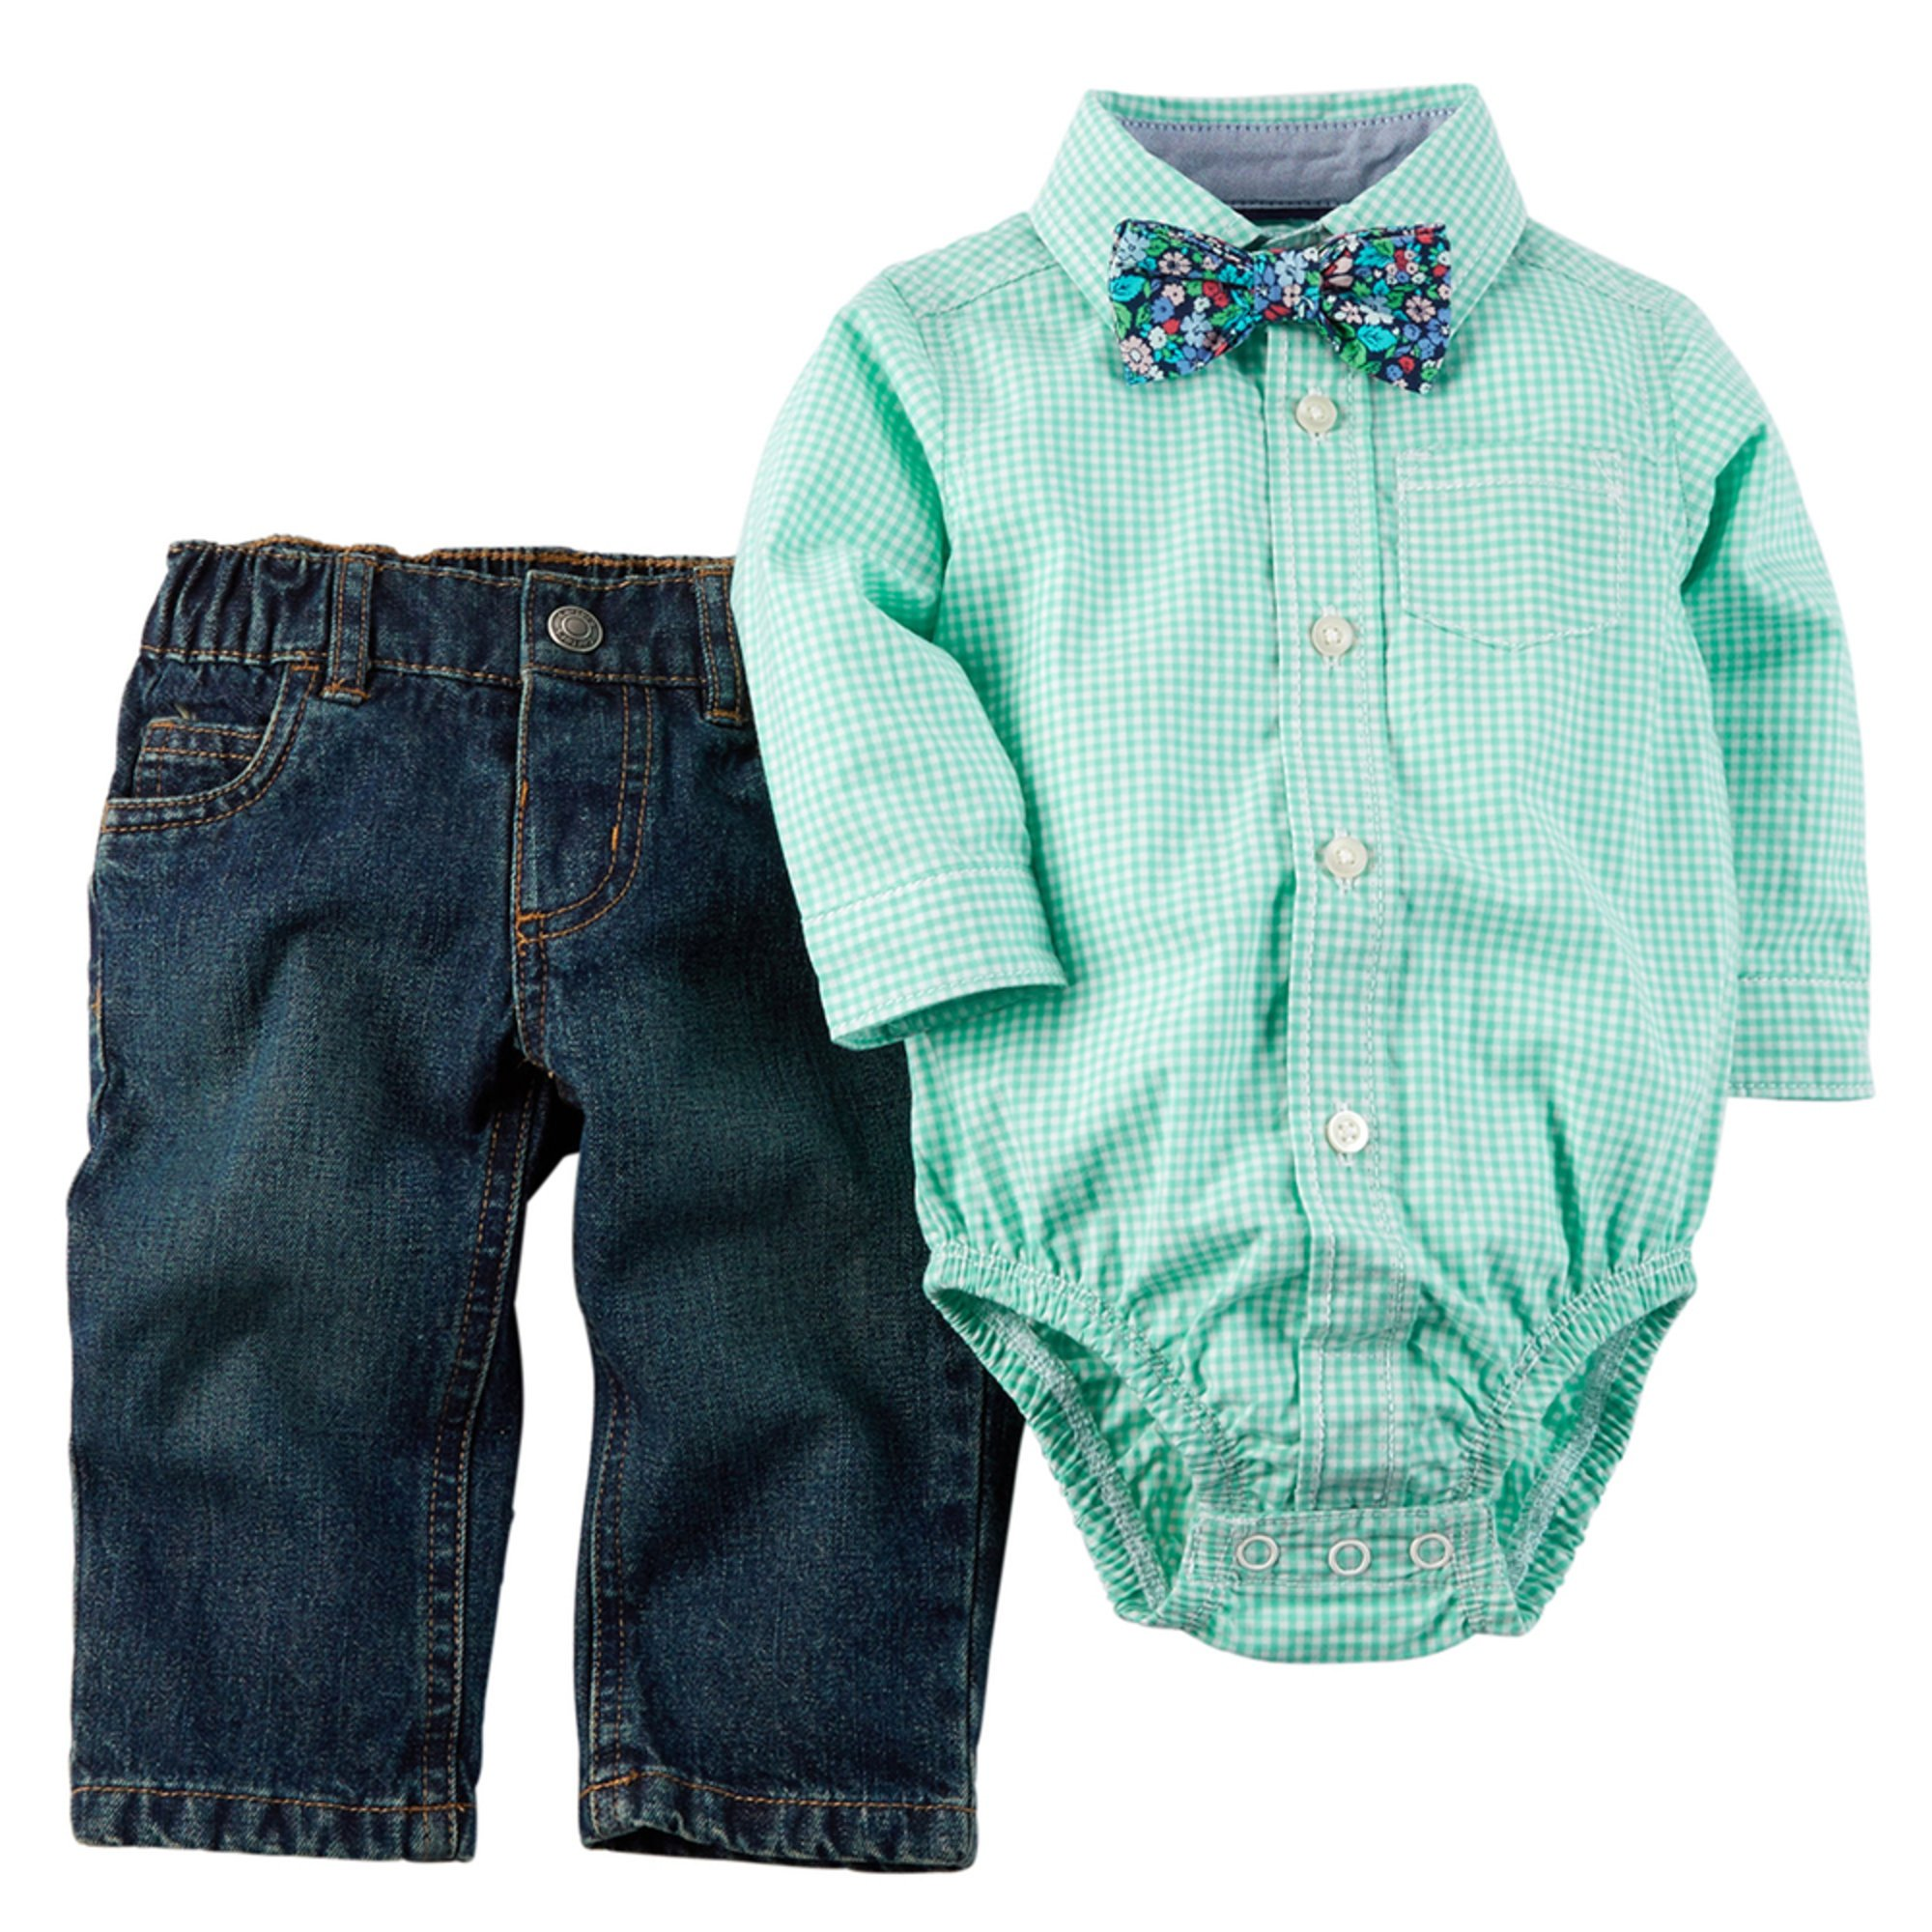 Carter 39 s baby boys 39 easter denim 3 piece shirt w tie set for Baby shirt and bow tie